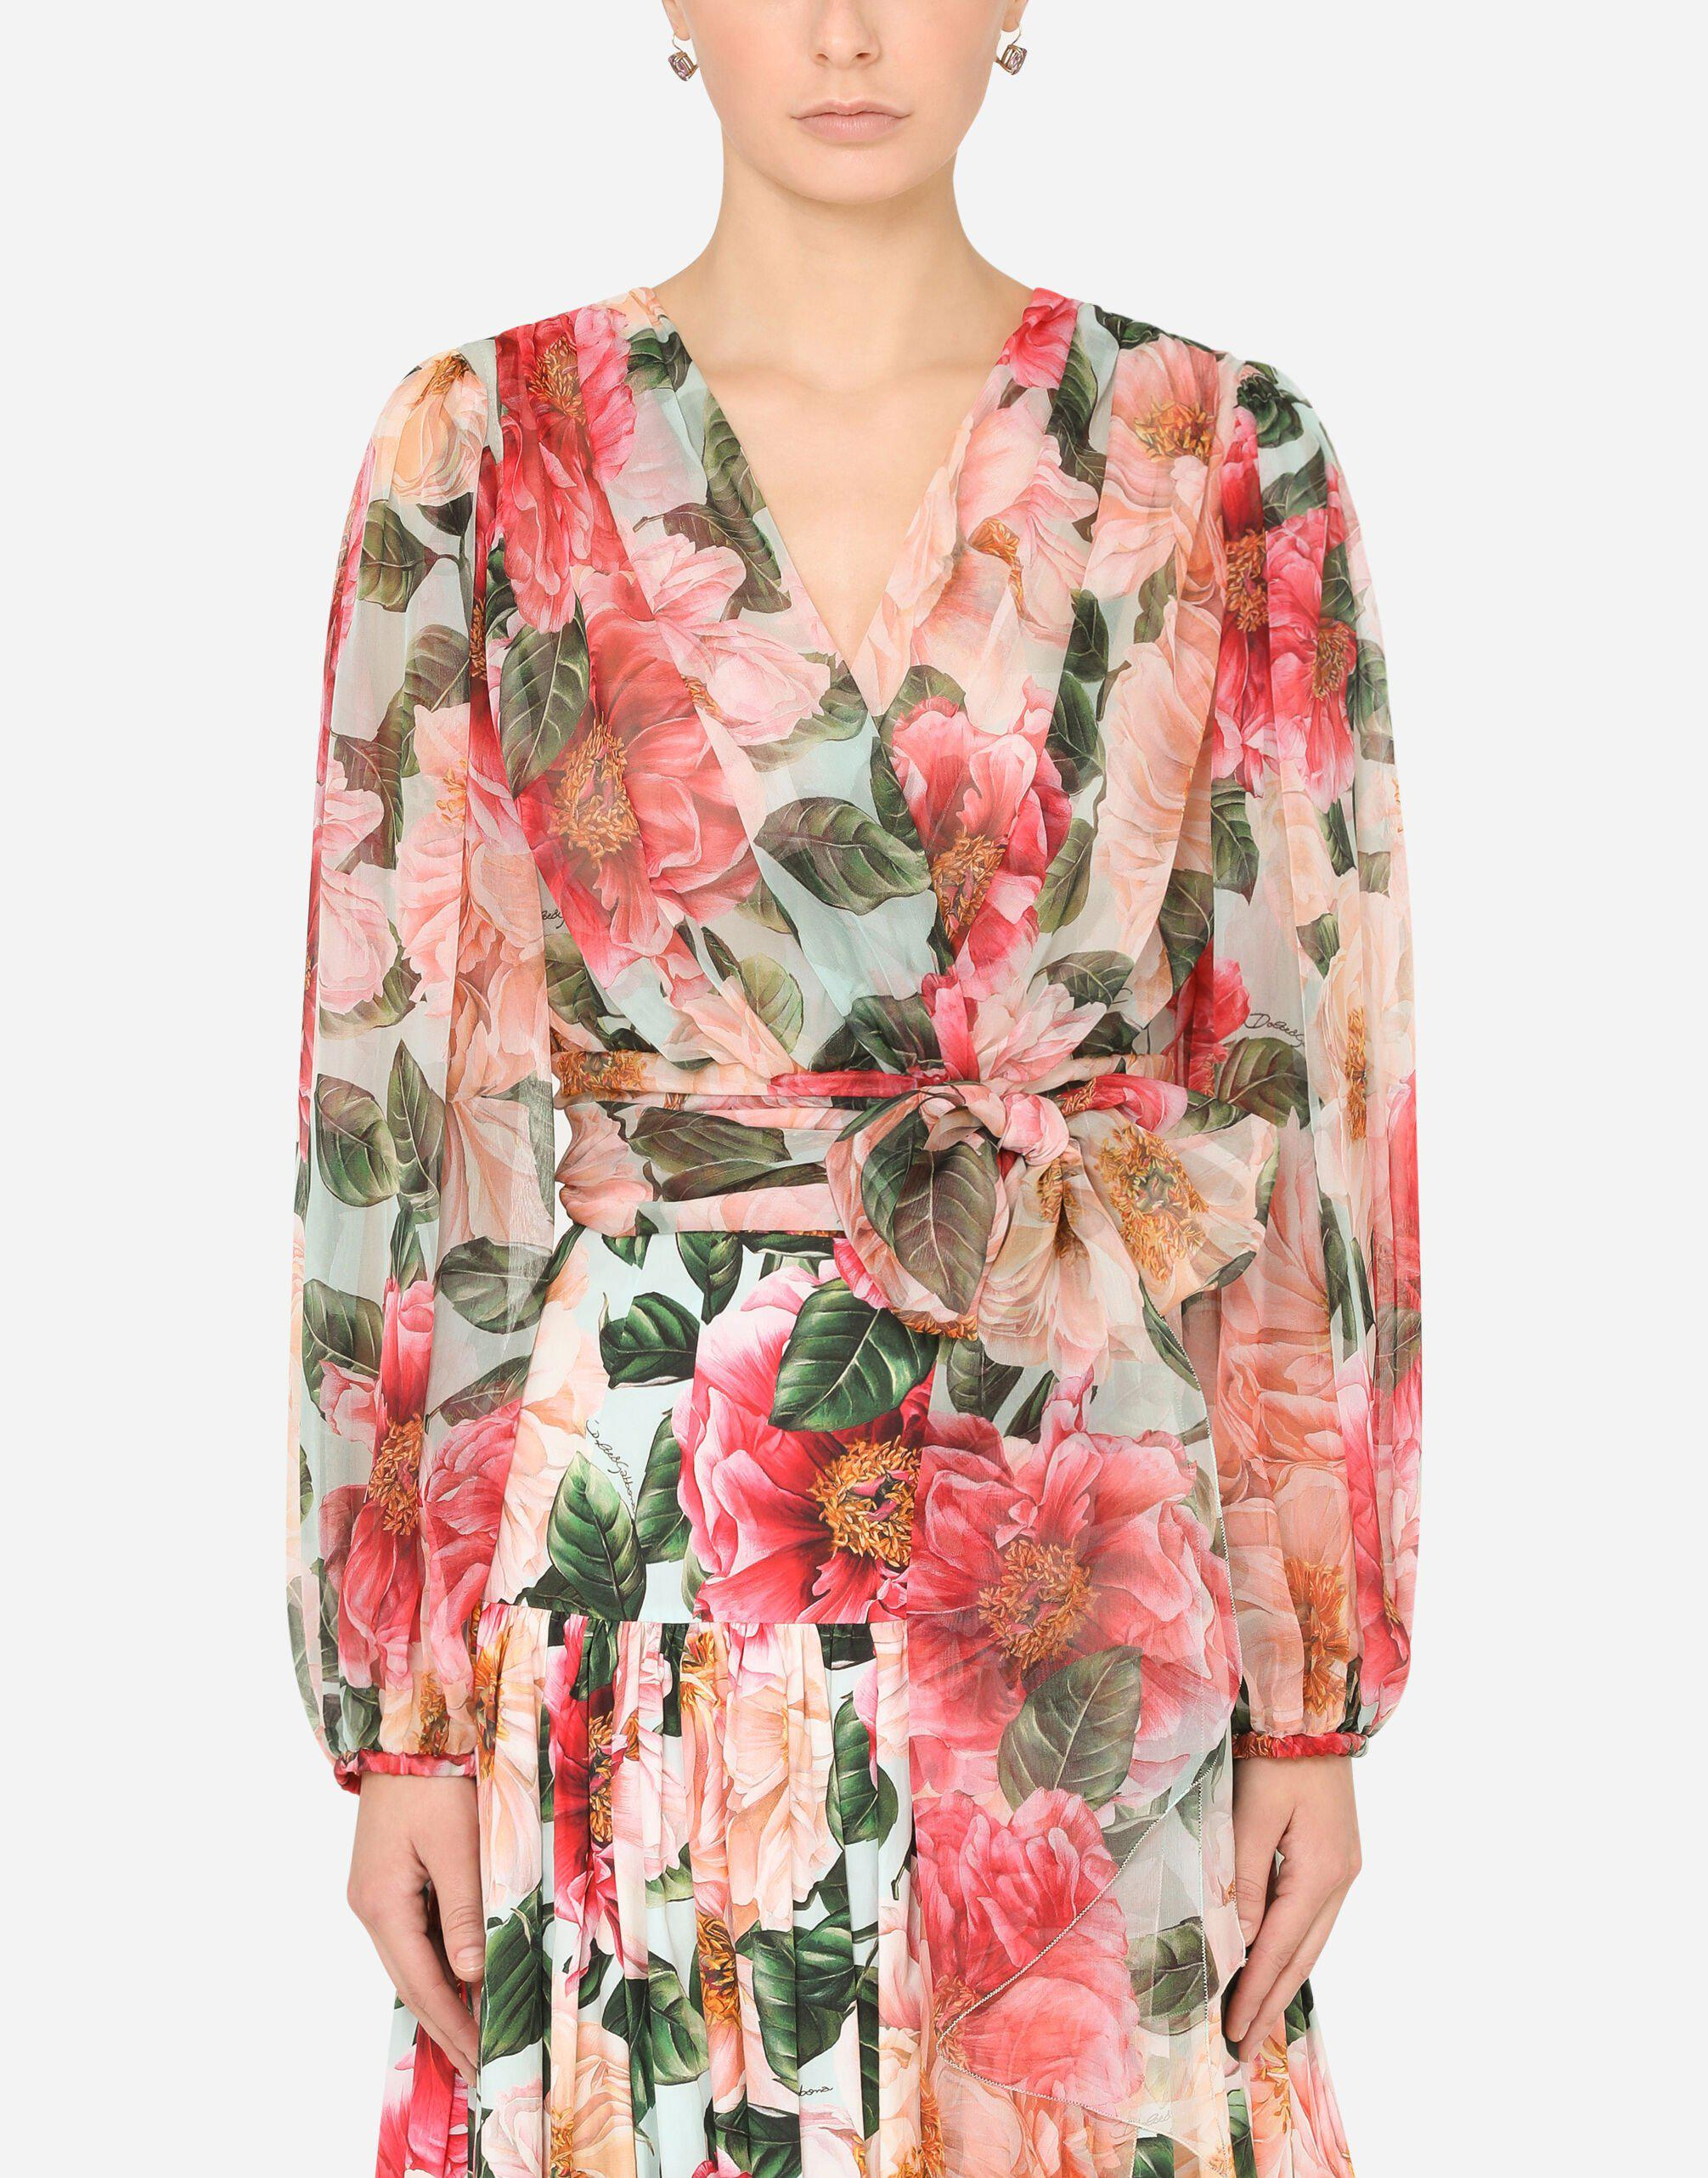 Long-sleeved chiffon top with camellia print